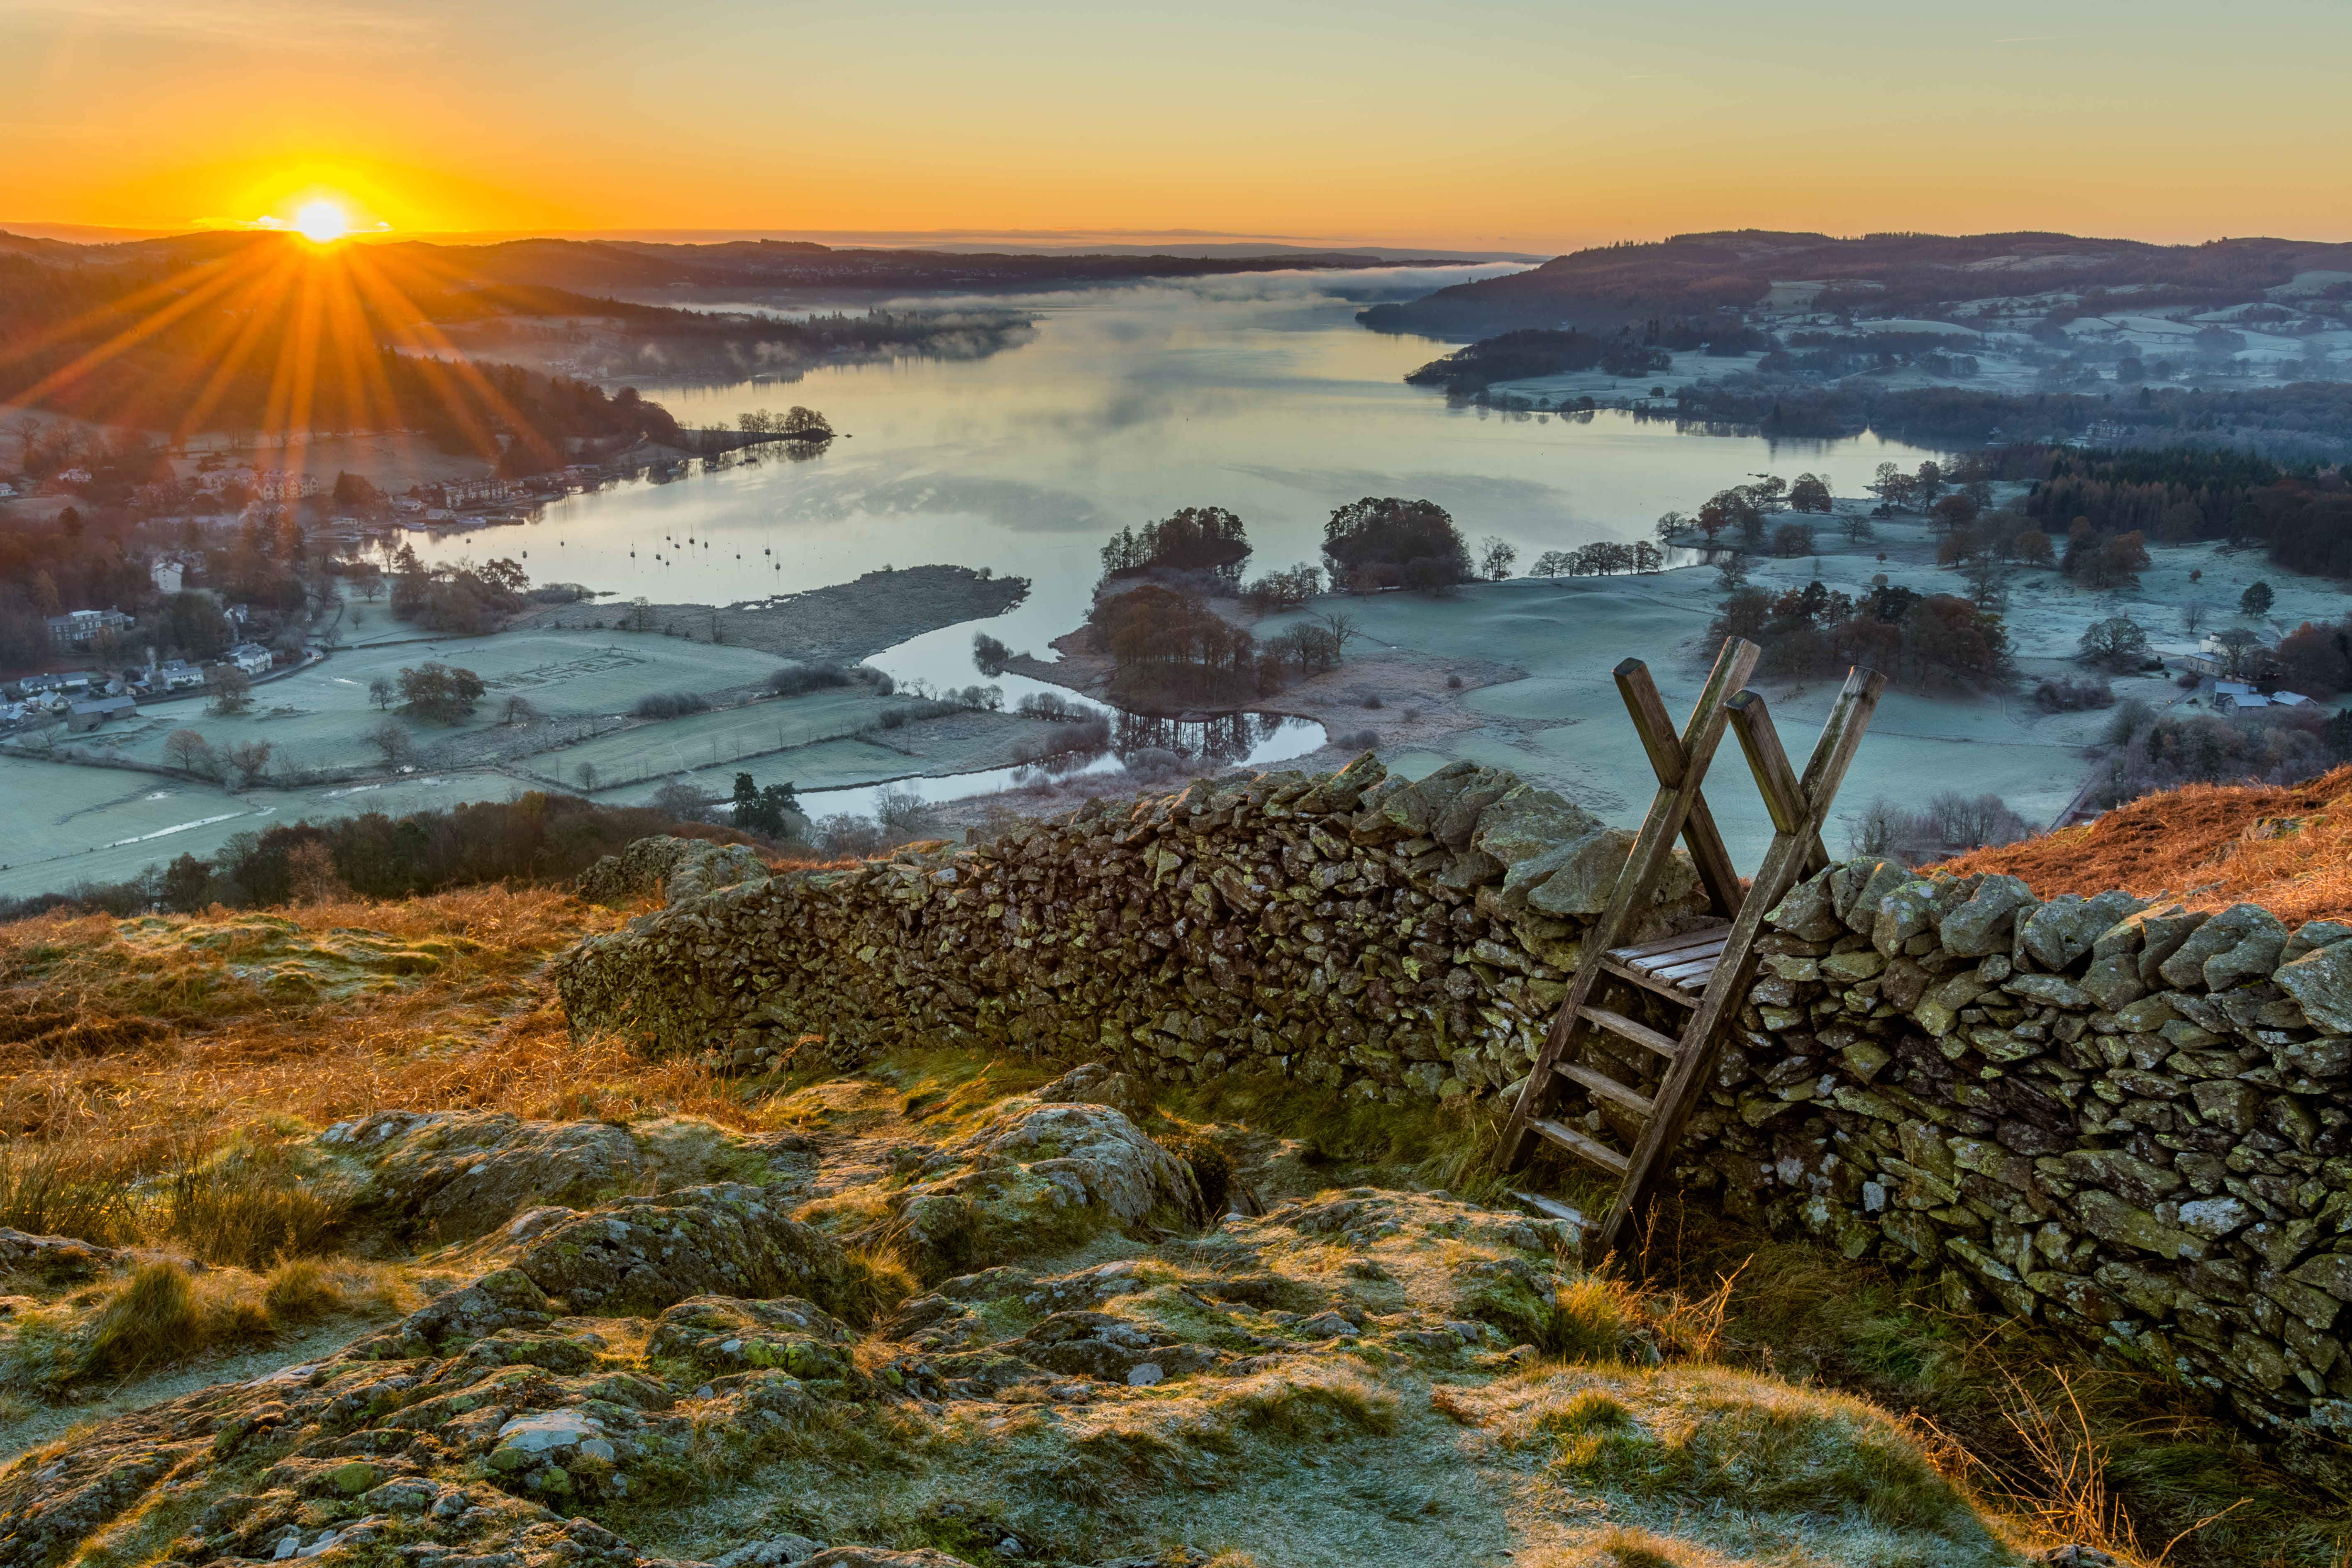 The UK's picturesque Lake District named a Unesco World Heritage Site